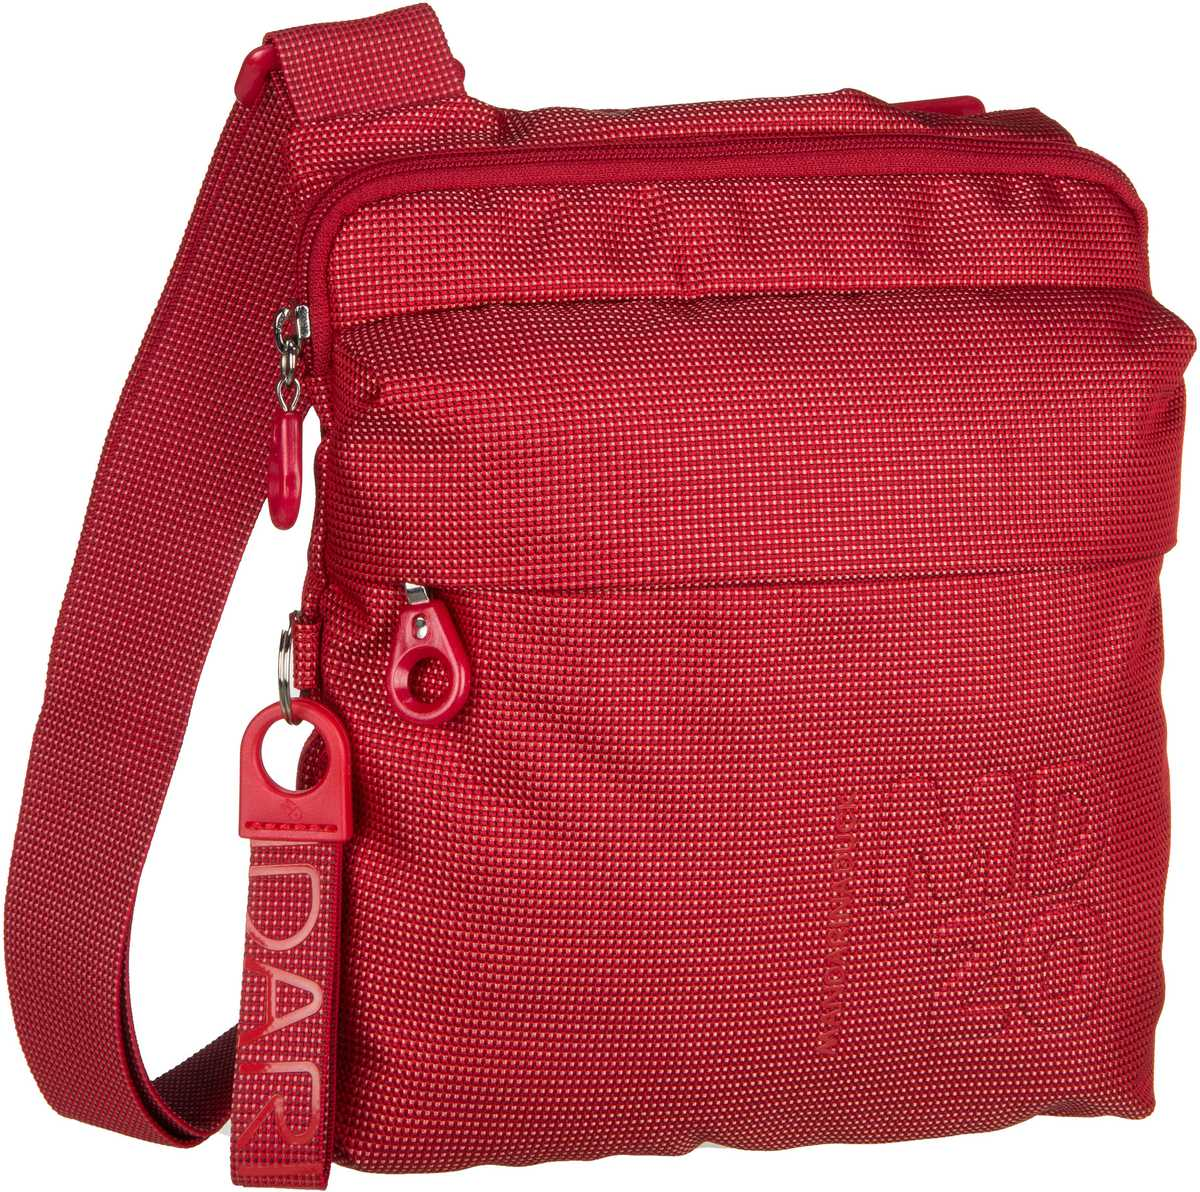 Umhängetasche MD20 Small Crossover Bag QMT04 Flame Scarlet